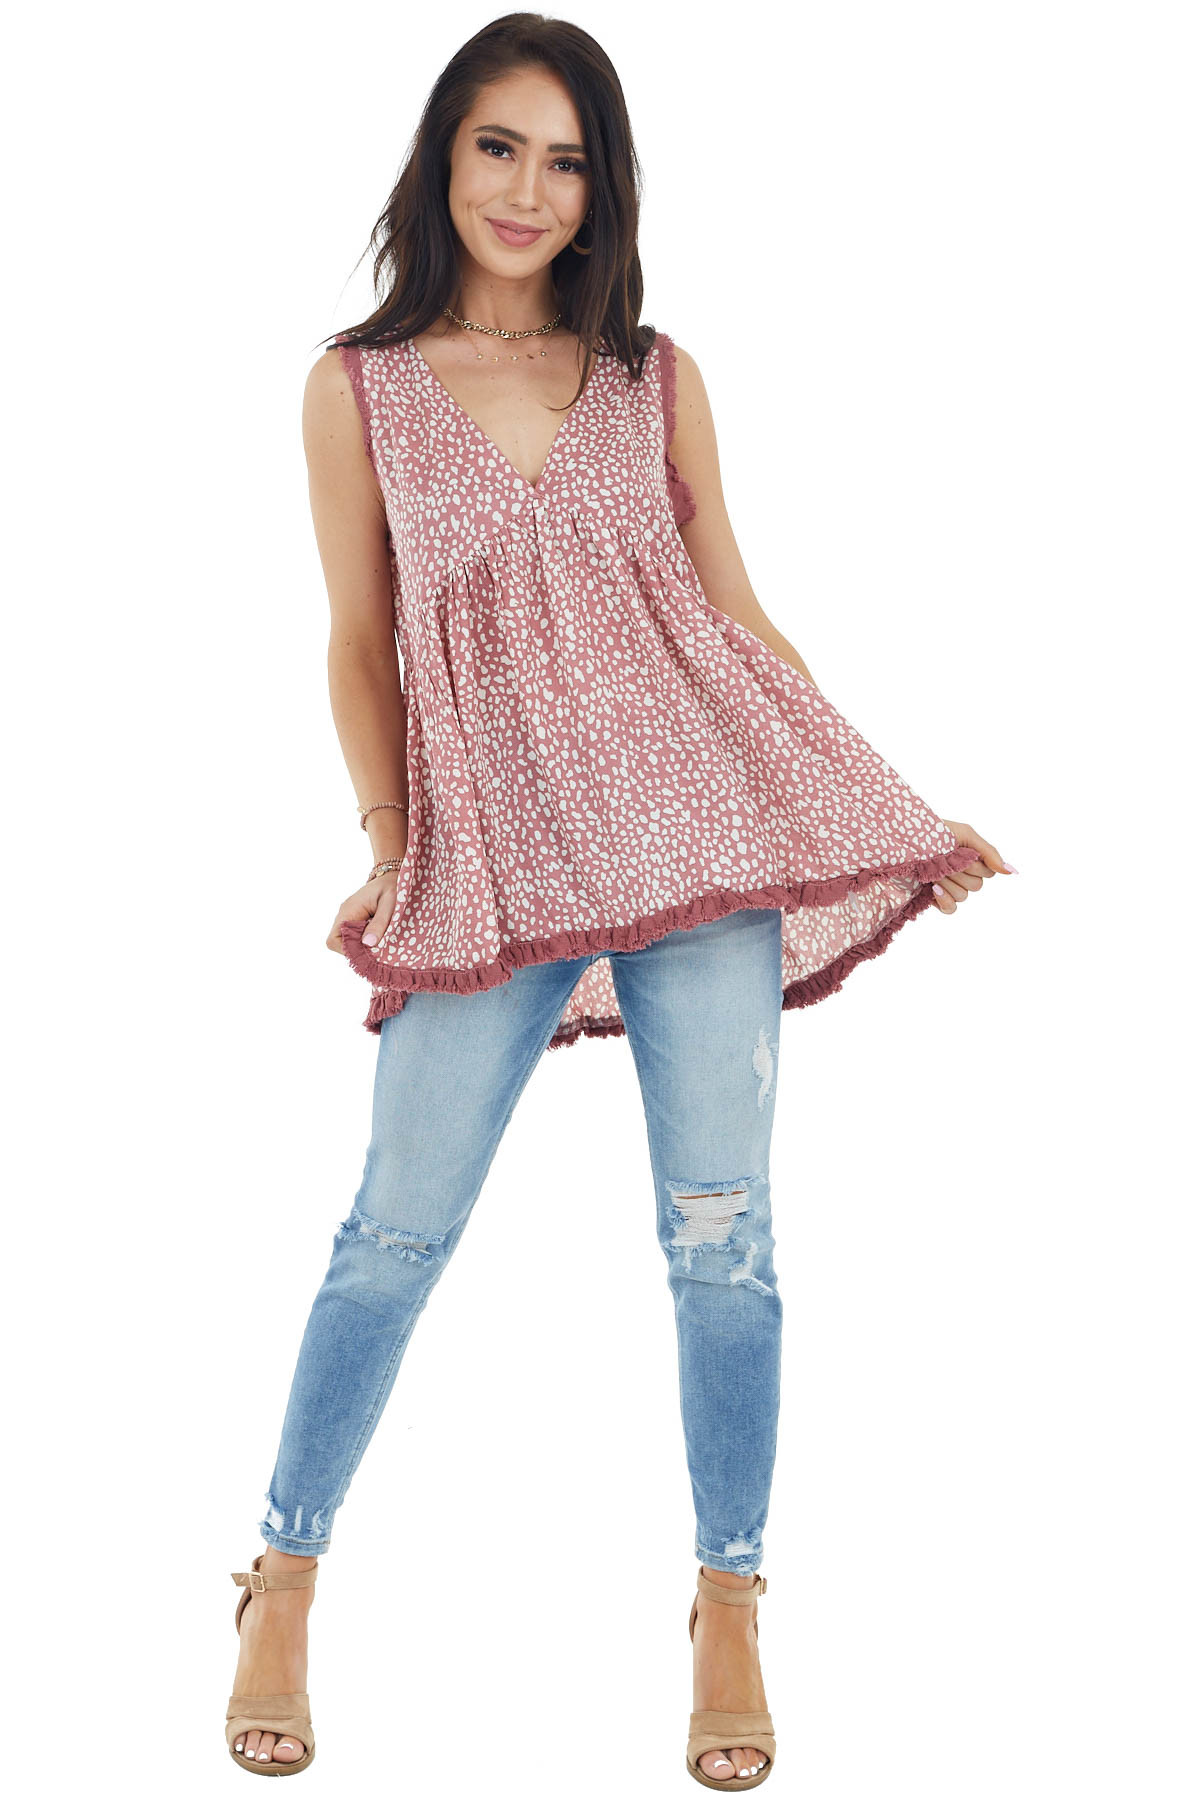 Dusty Rose Printed Sleeveless Top with Frayed Details